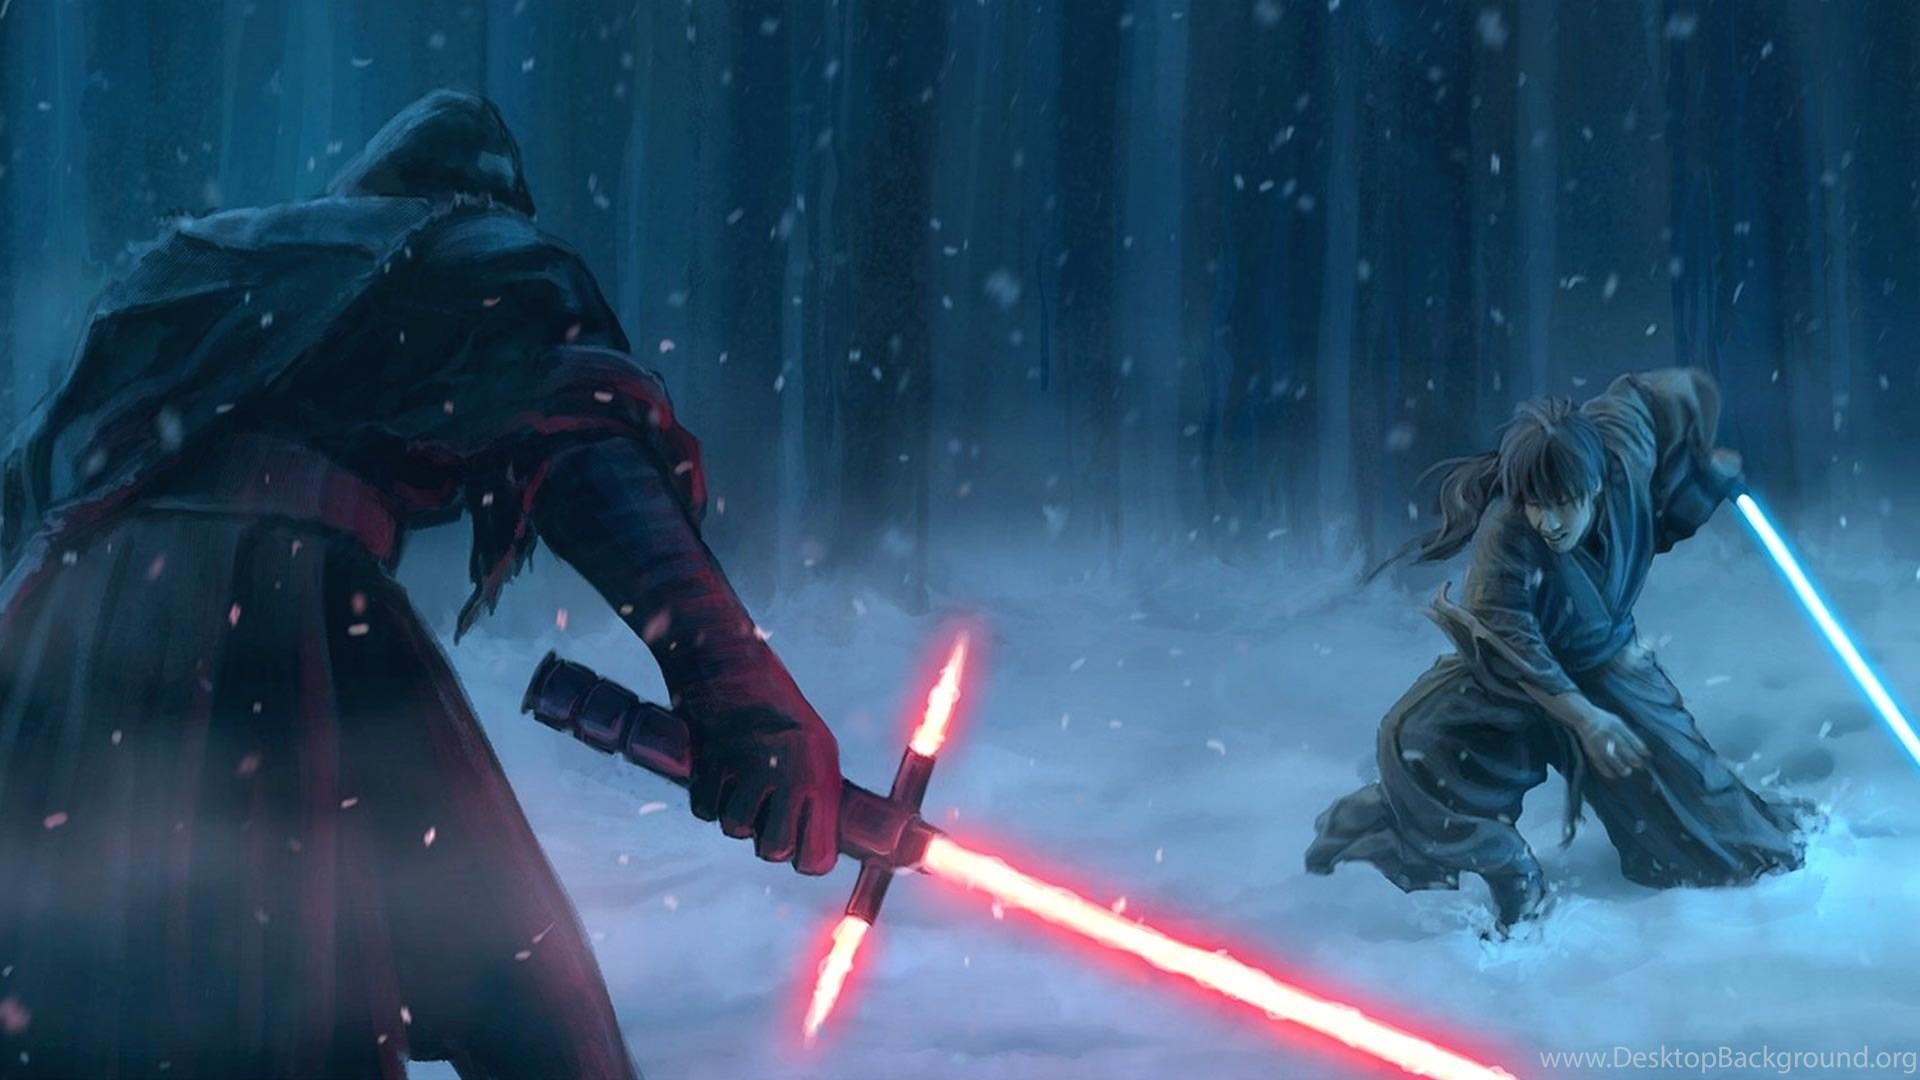 star wars sith vs jedi wallpapers – free full hd wallpapers for